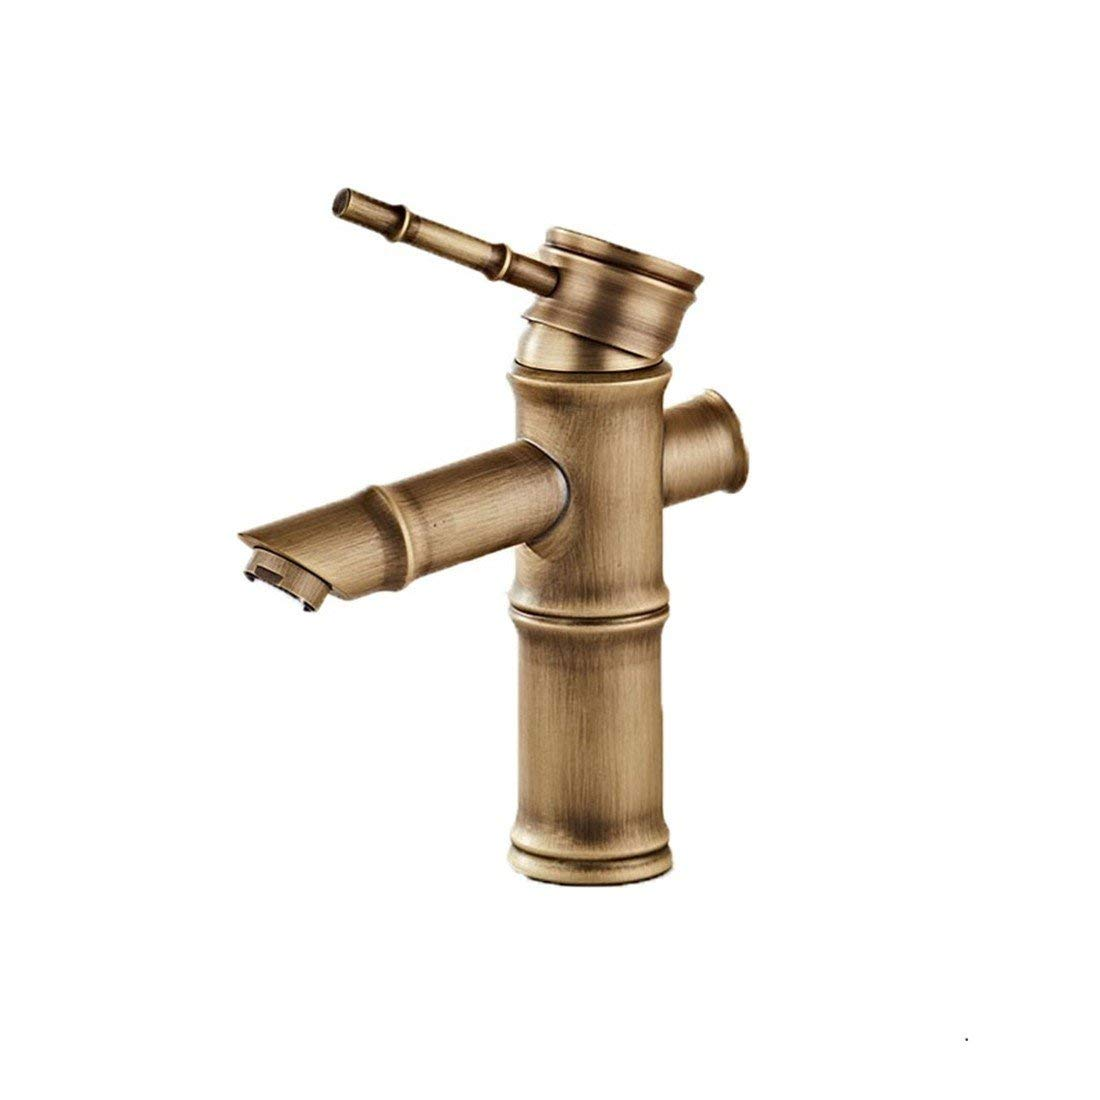 10 Oudan Basin Mixer Tap Bathroom Sink Faucet All copper antique faucet hot and cold basin vanity area with leading European surface Sinks Faucets antique bamboo brass faucets, B a cold (color   1)